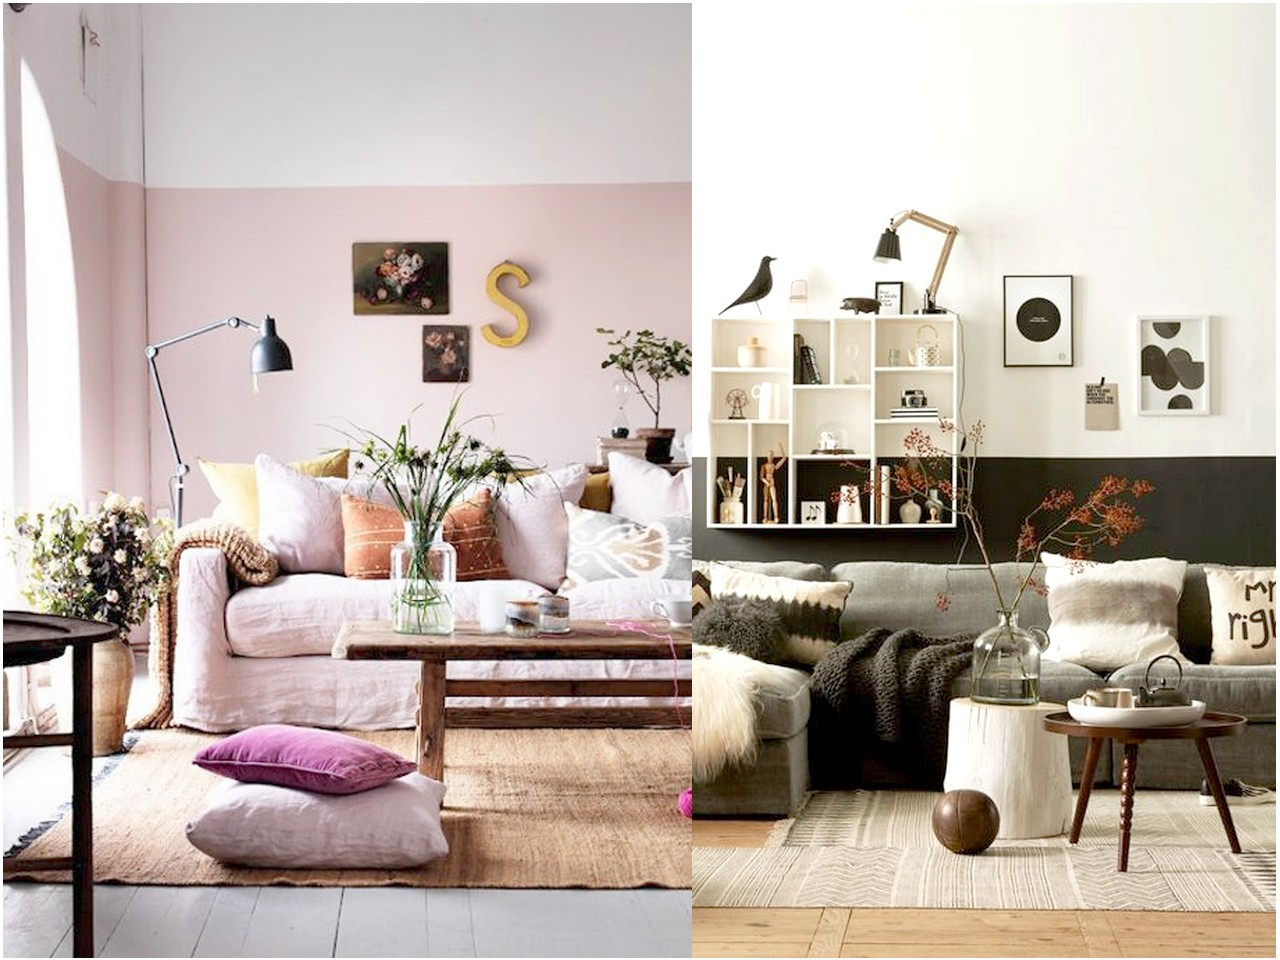 7 ideas para decorar con poco dinero el sal n de tu casa for Como decorar mi living con poca plata